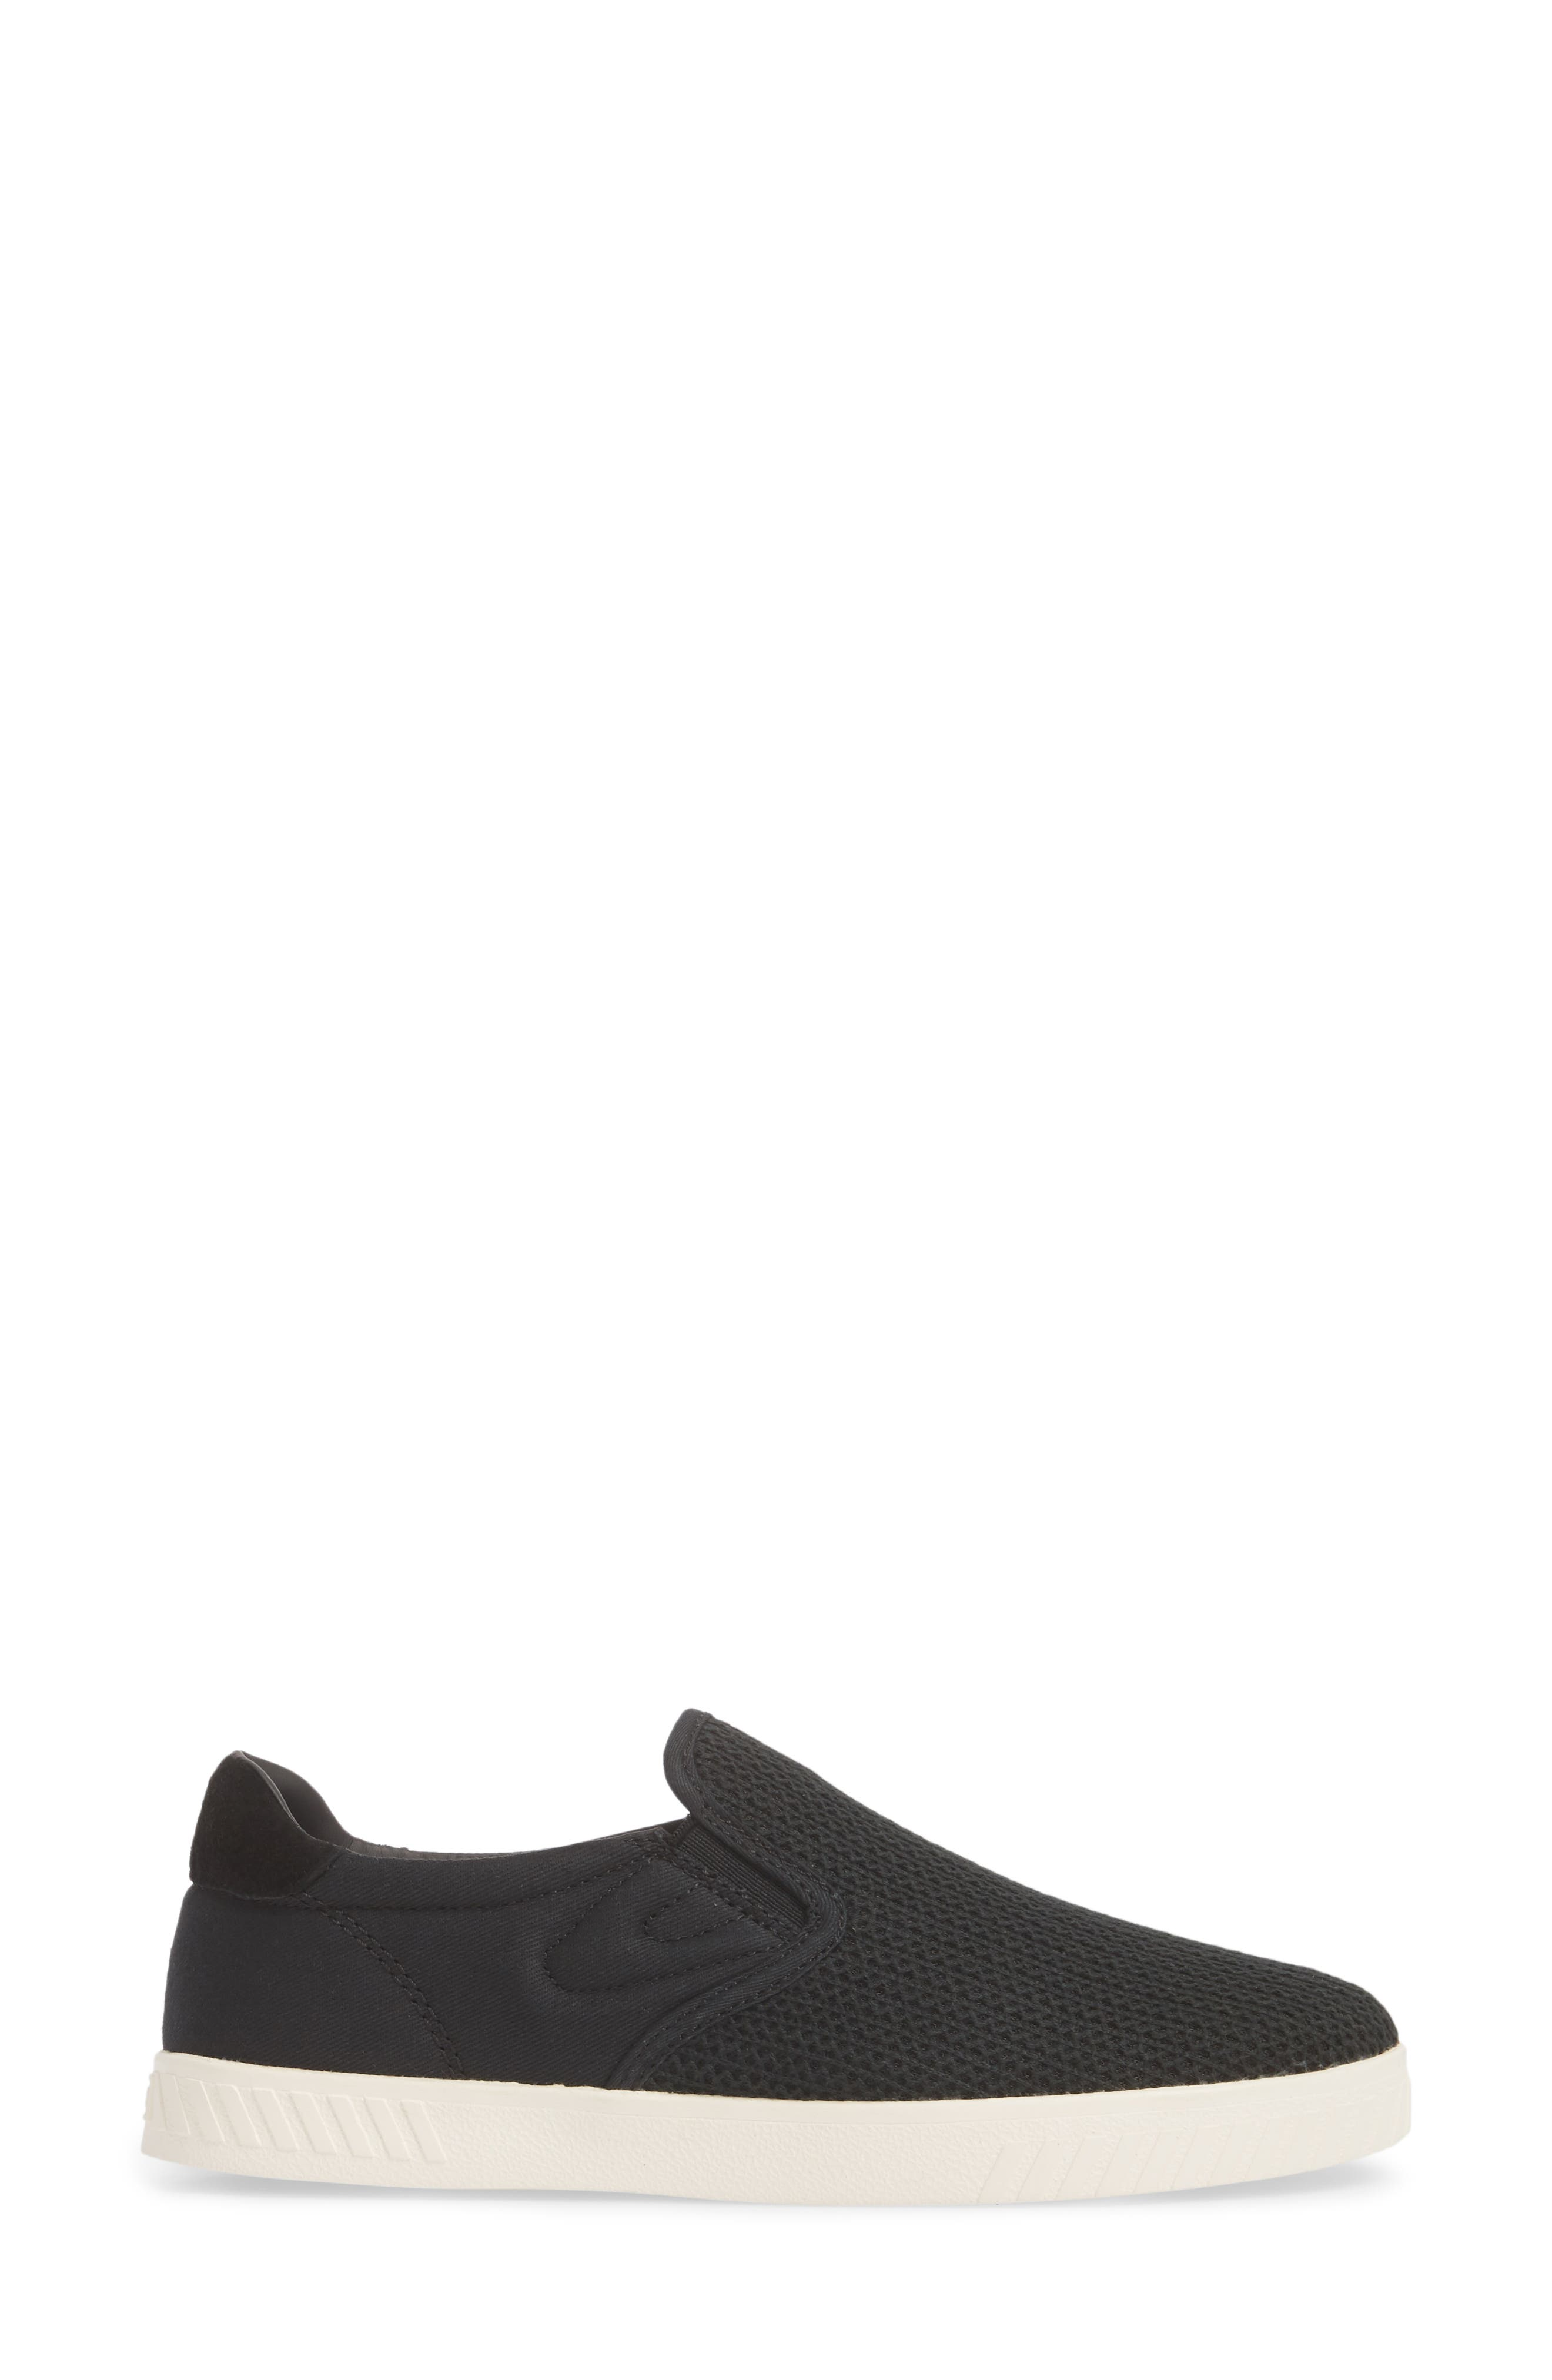 Cruz Mesh Slip-On Sneaker,                             Alternate thumbnail 7, color,